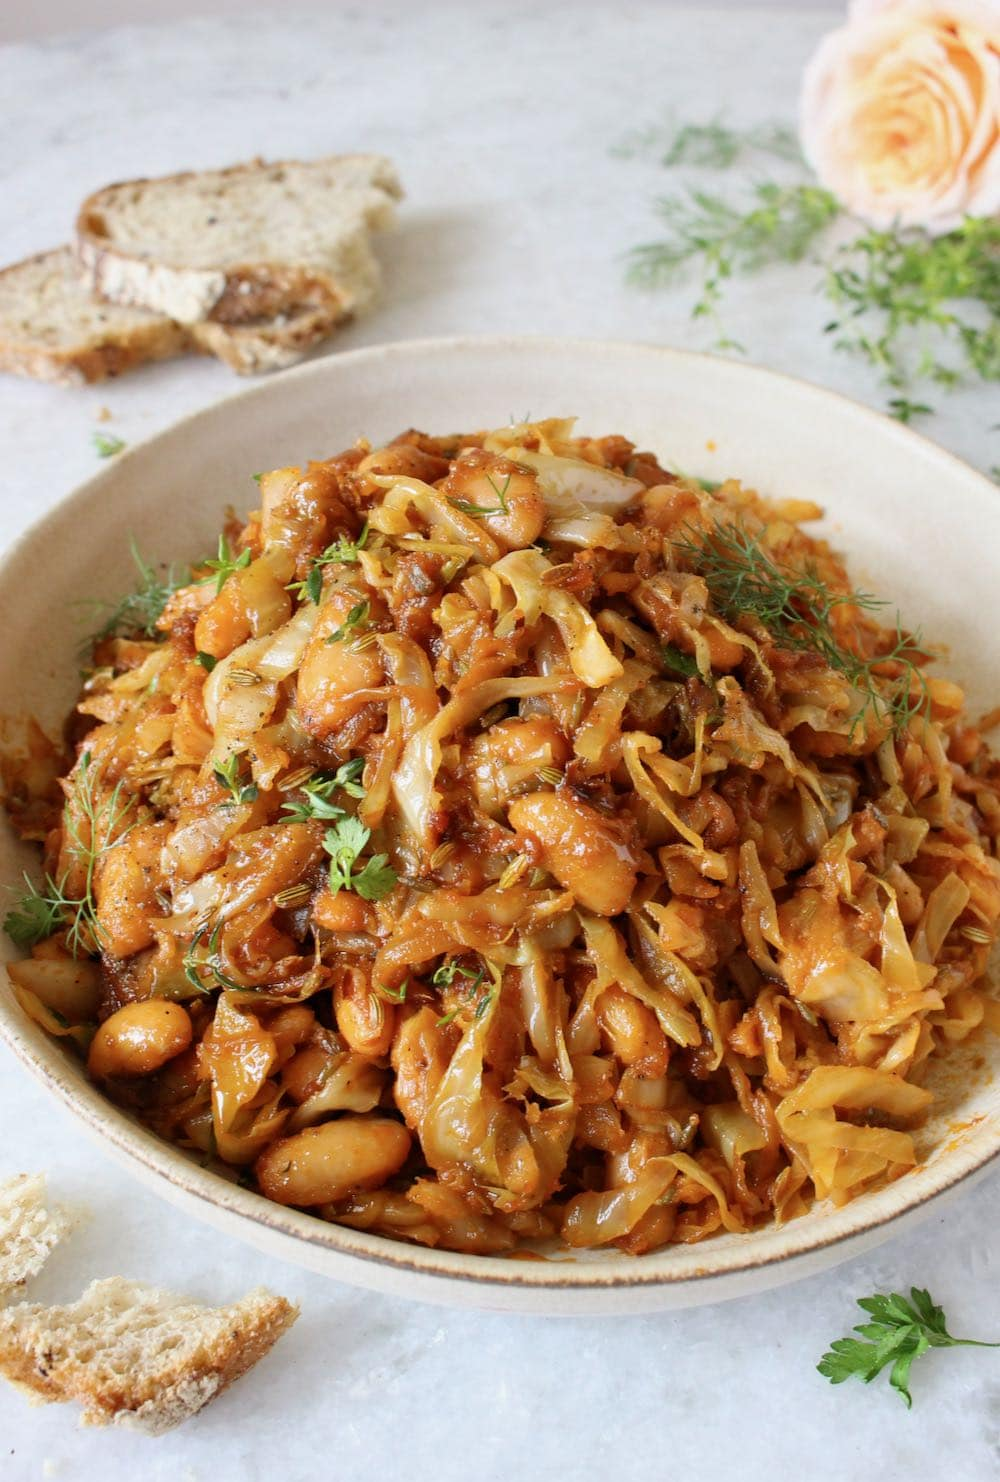 Fried Cabbage and Onions